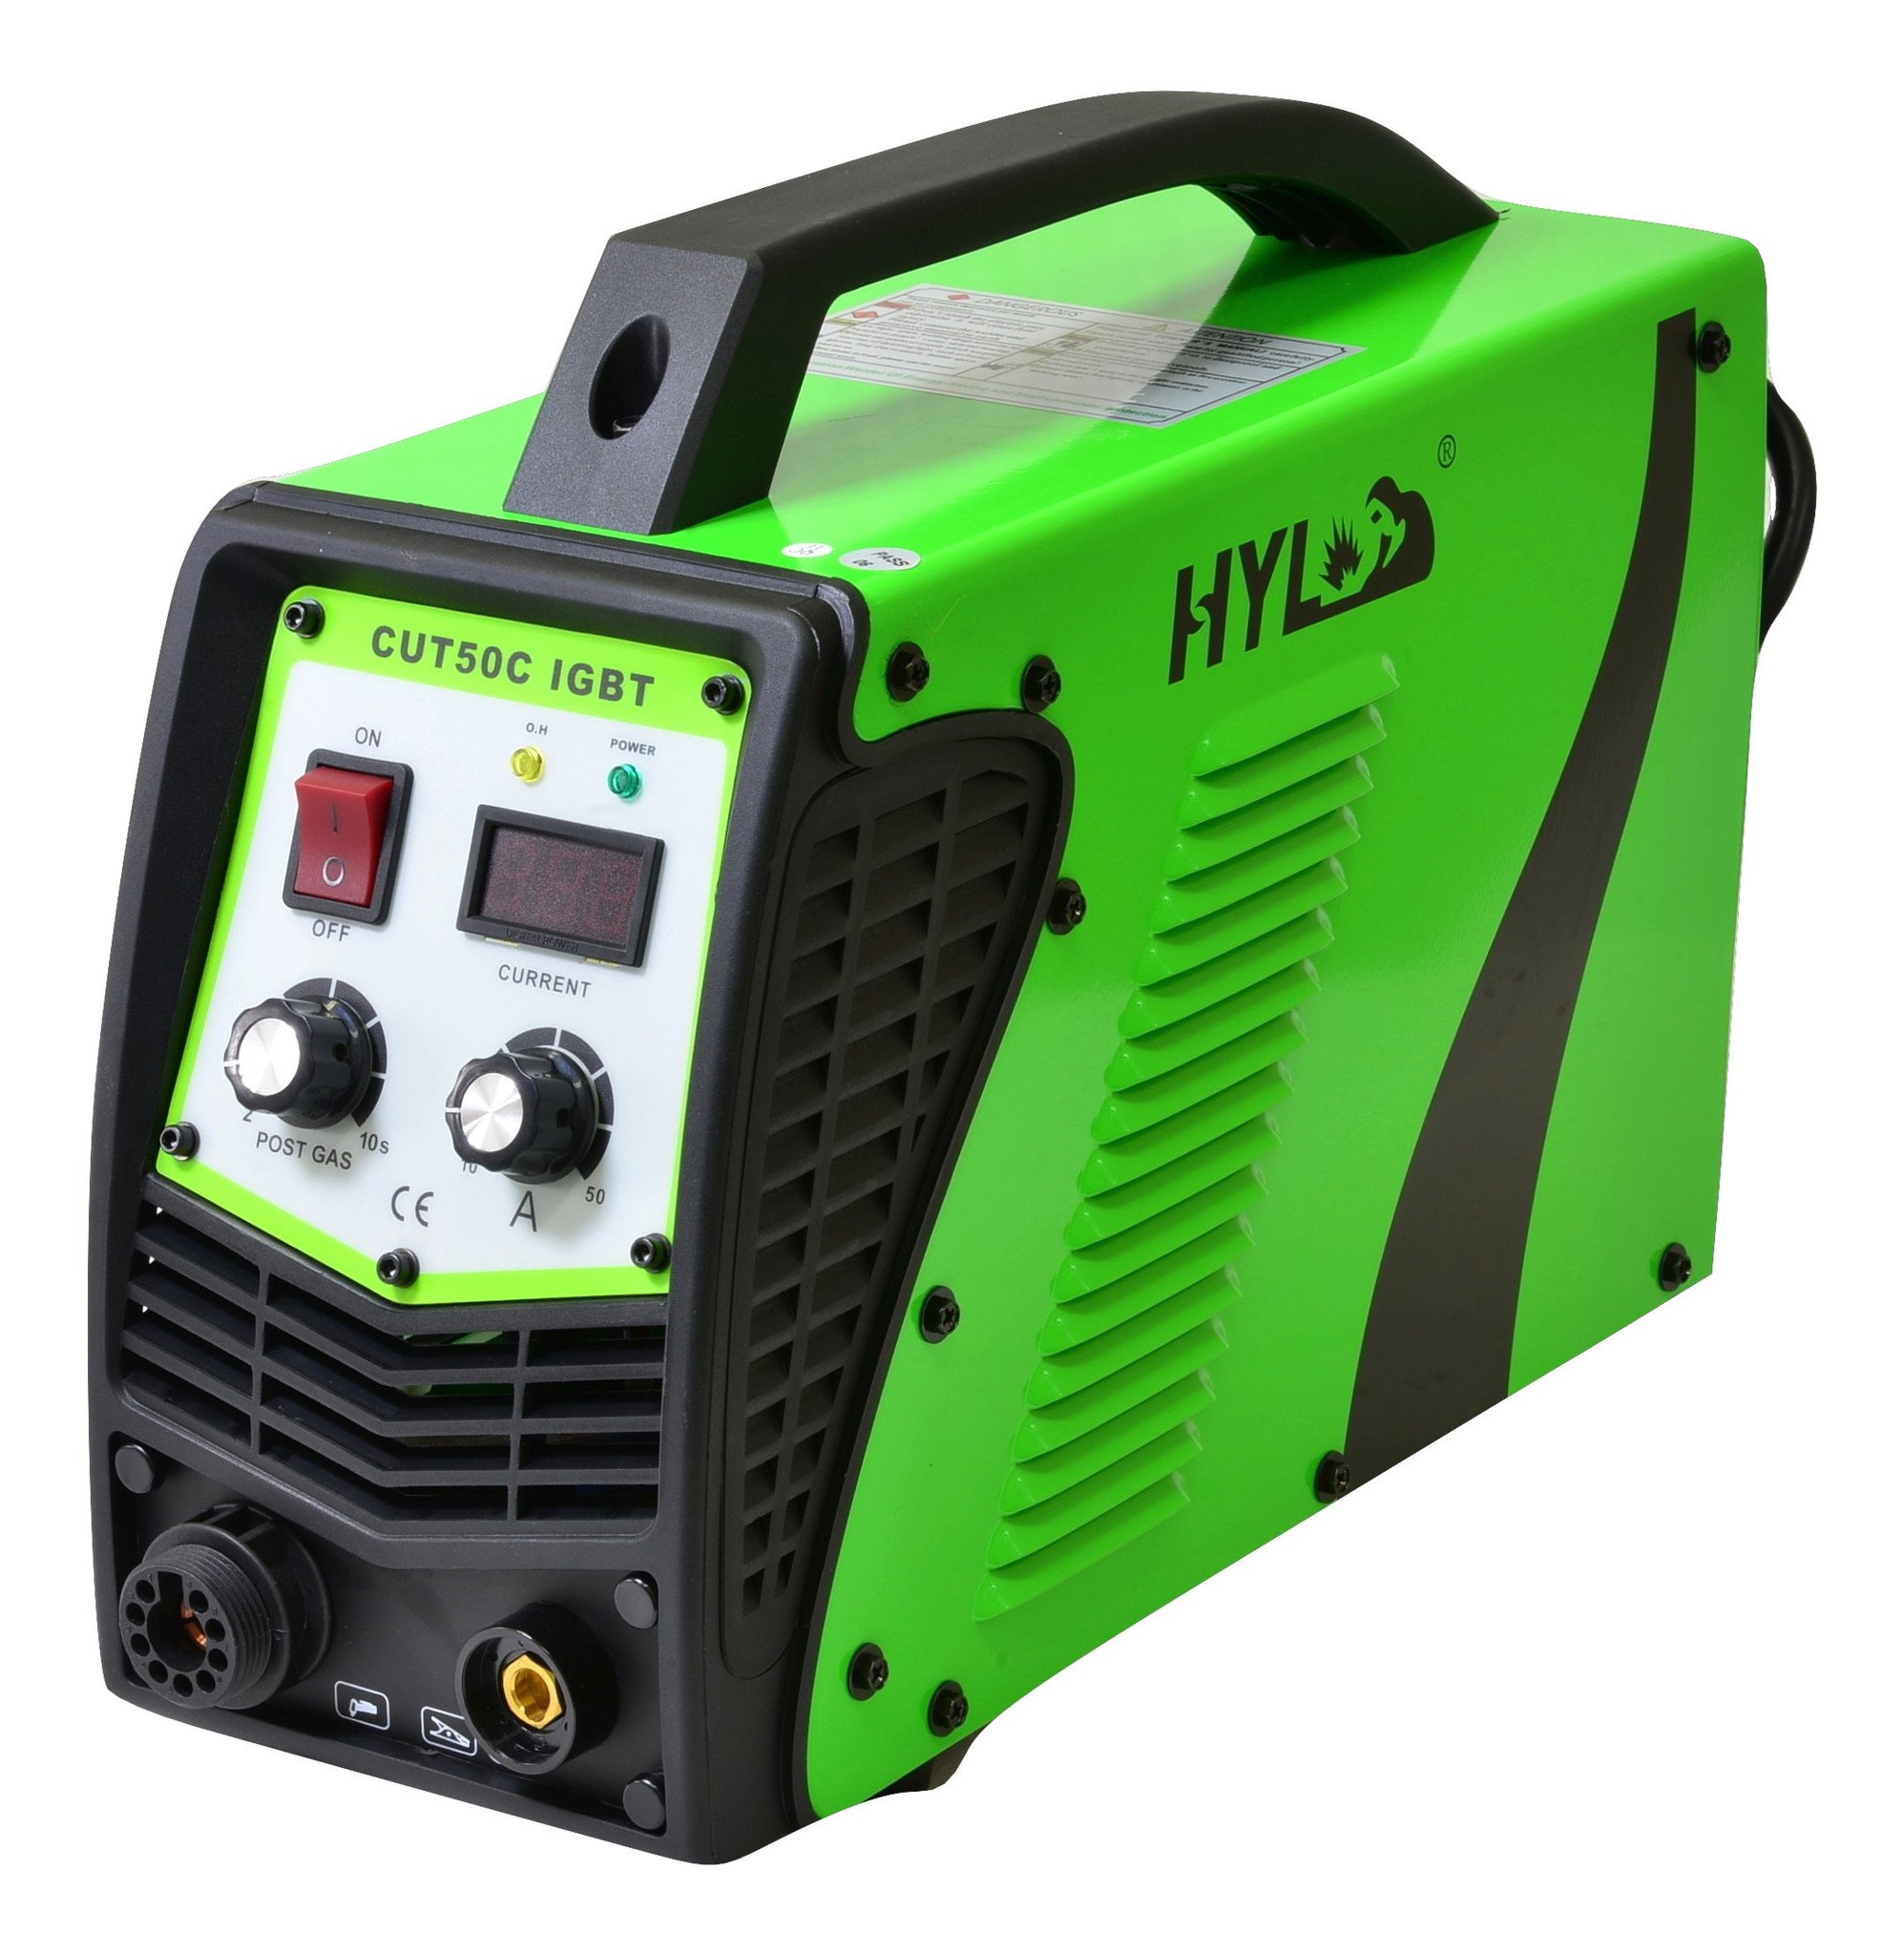 HYL CUT50C Plasma Cutter - 2YR USA WARRANTY WITH USA BASED PARTS AND SERVICE … by HYL